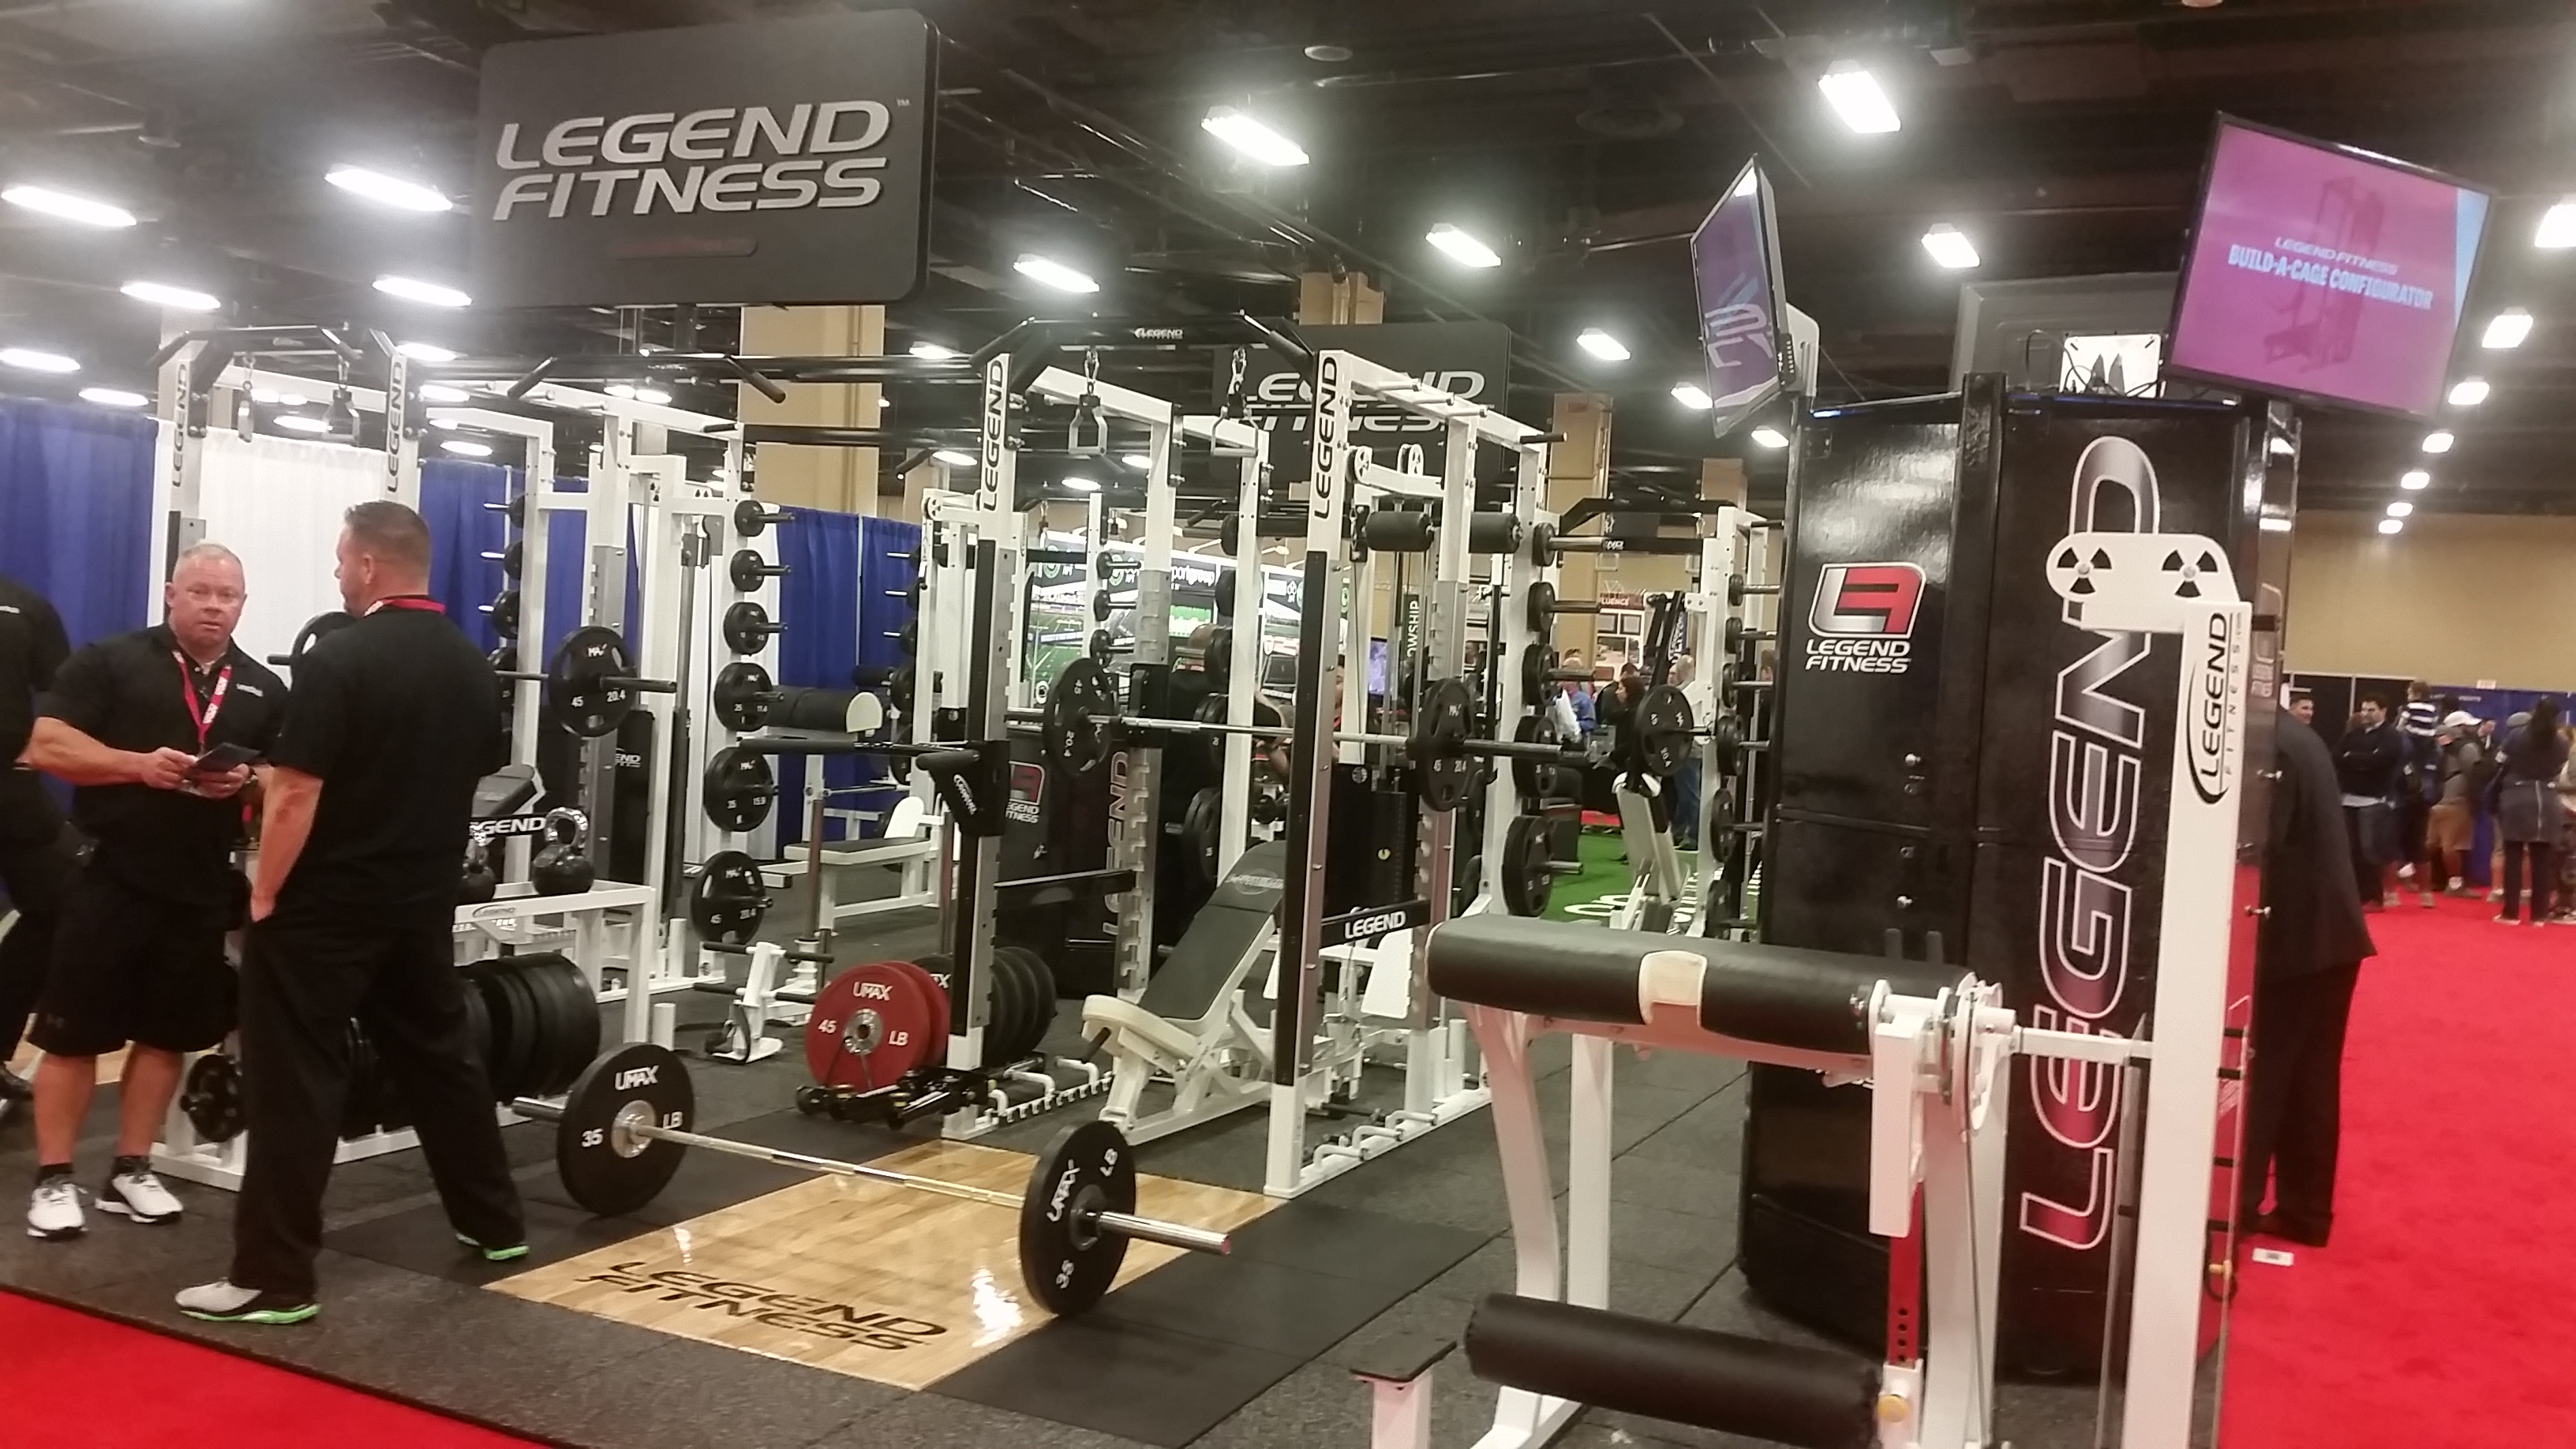 Afca Convention 2017 Legend Fitness Legend Fitness